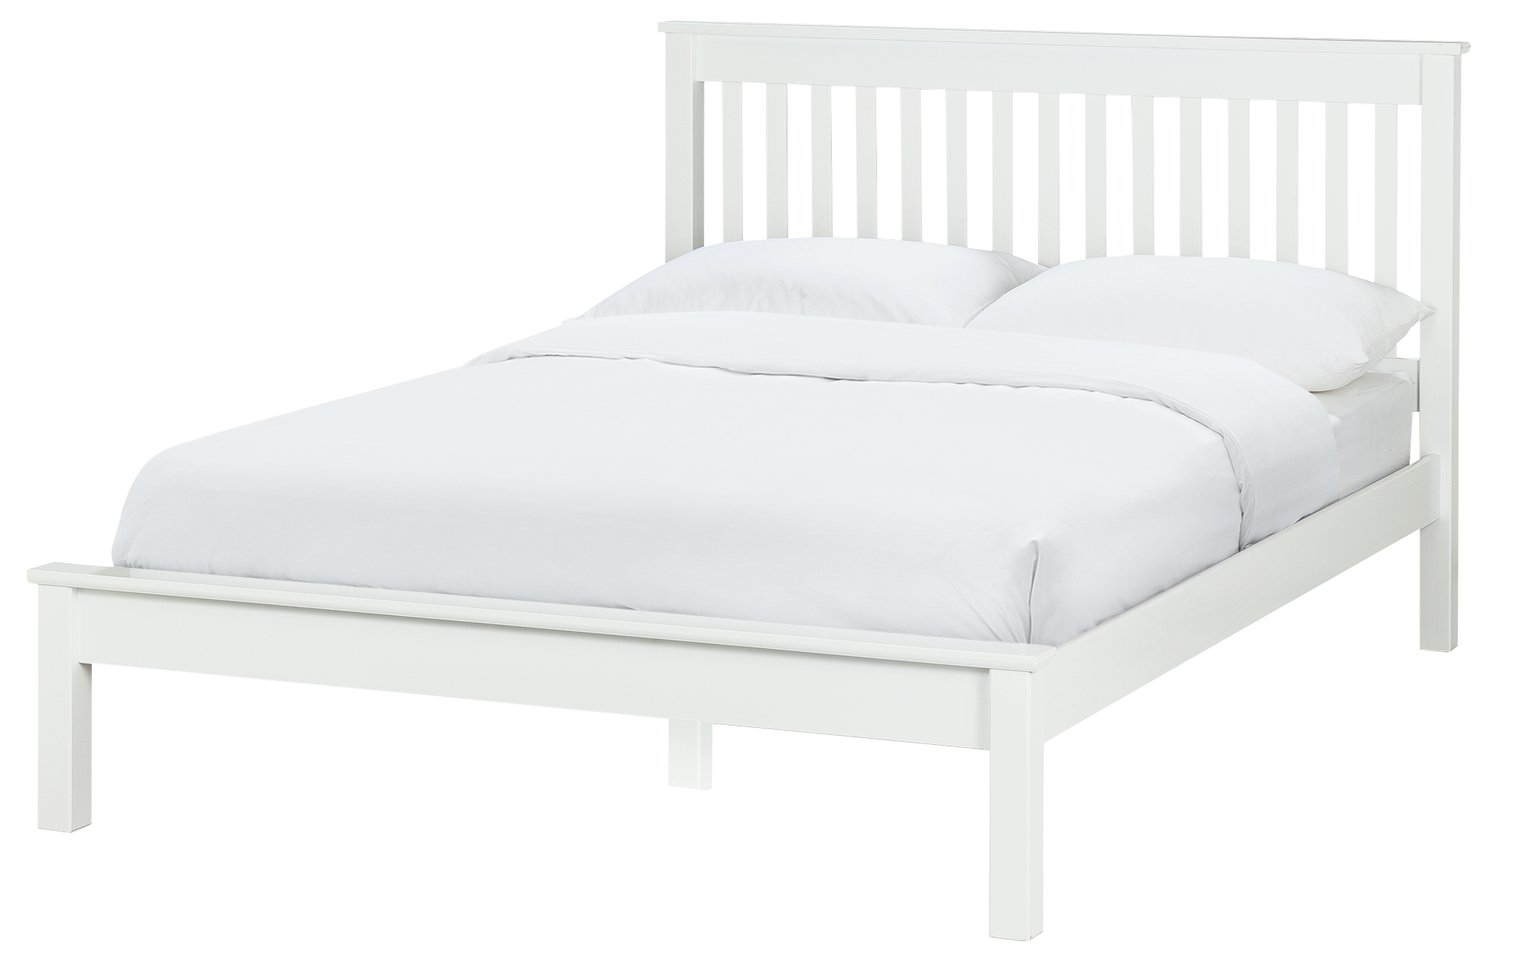 Images Of Beds buy collection aspley small double bed frame - white at argos.co